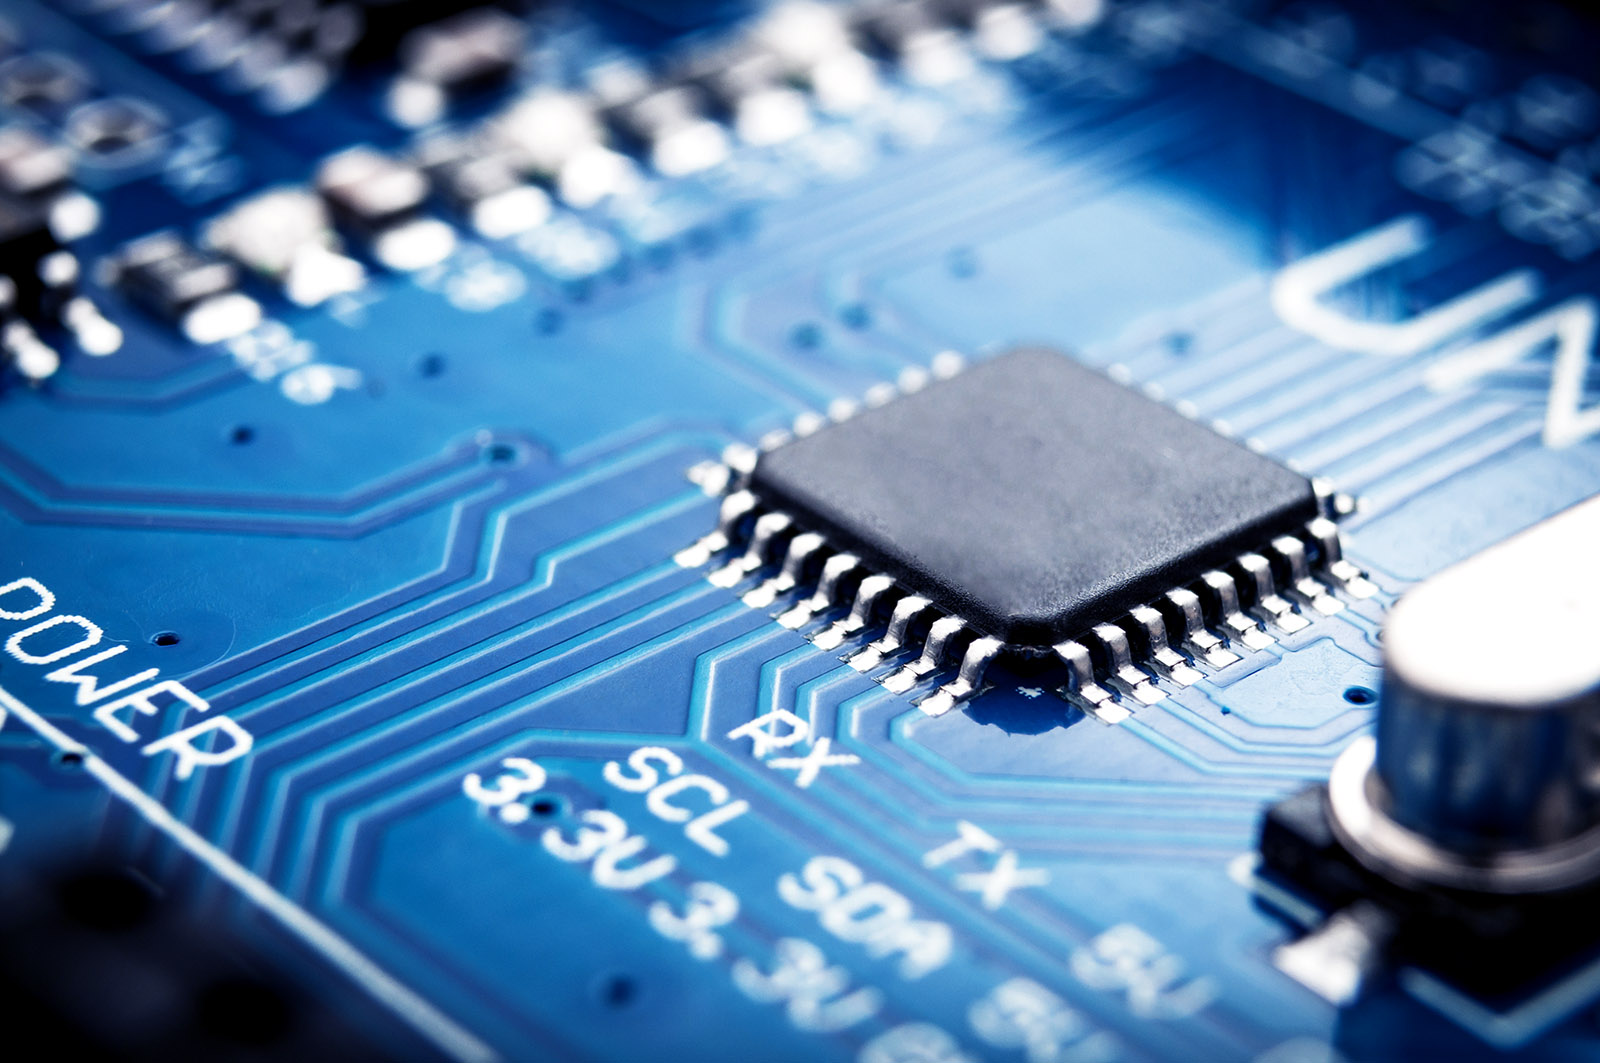 COVID-19 impact on semiconductor market